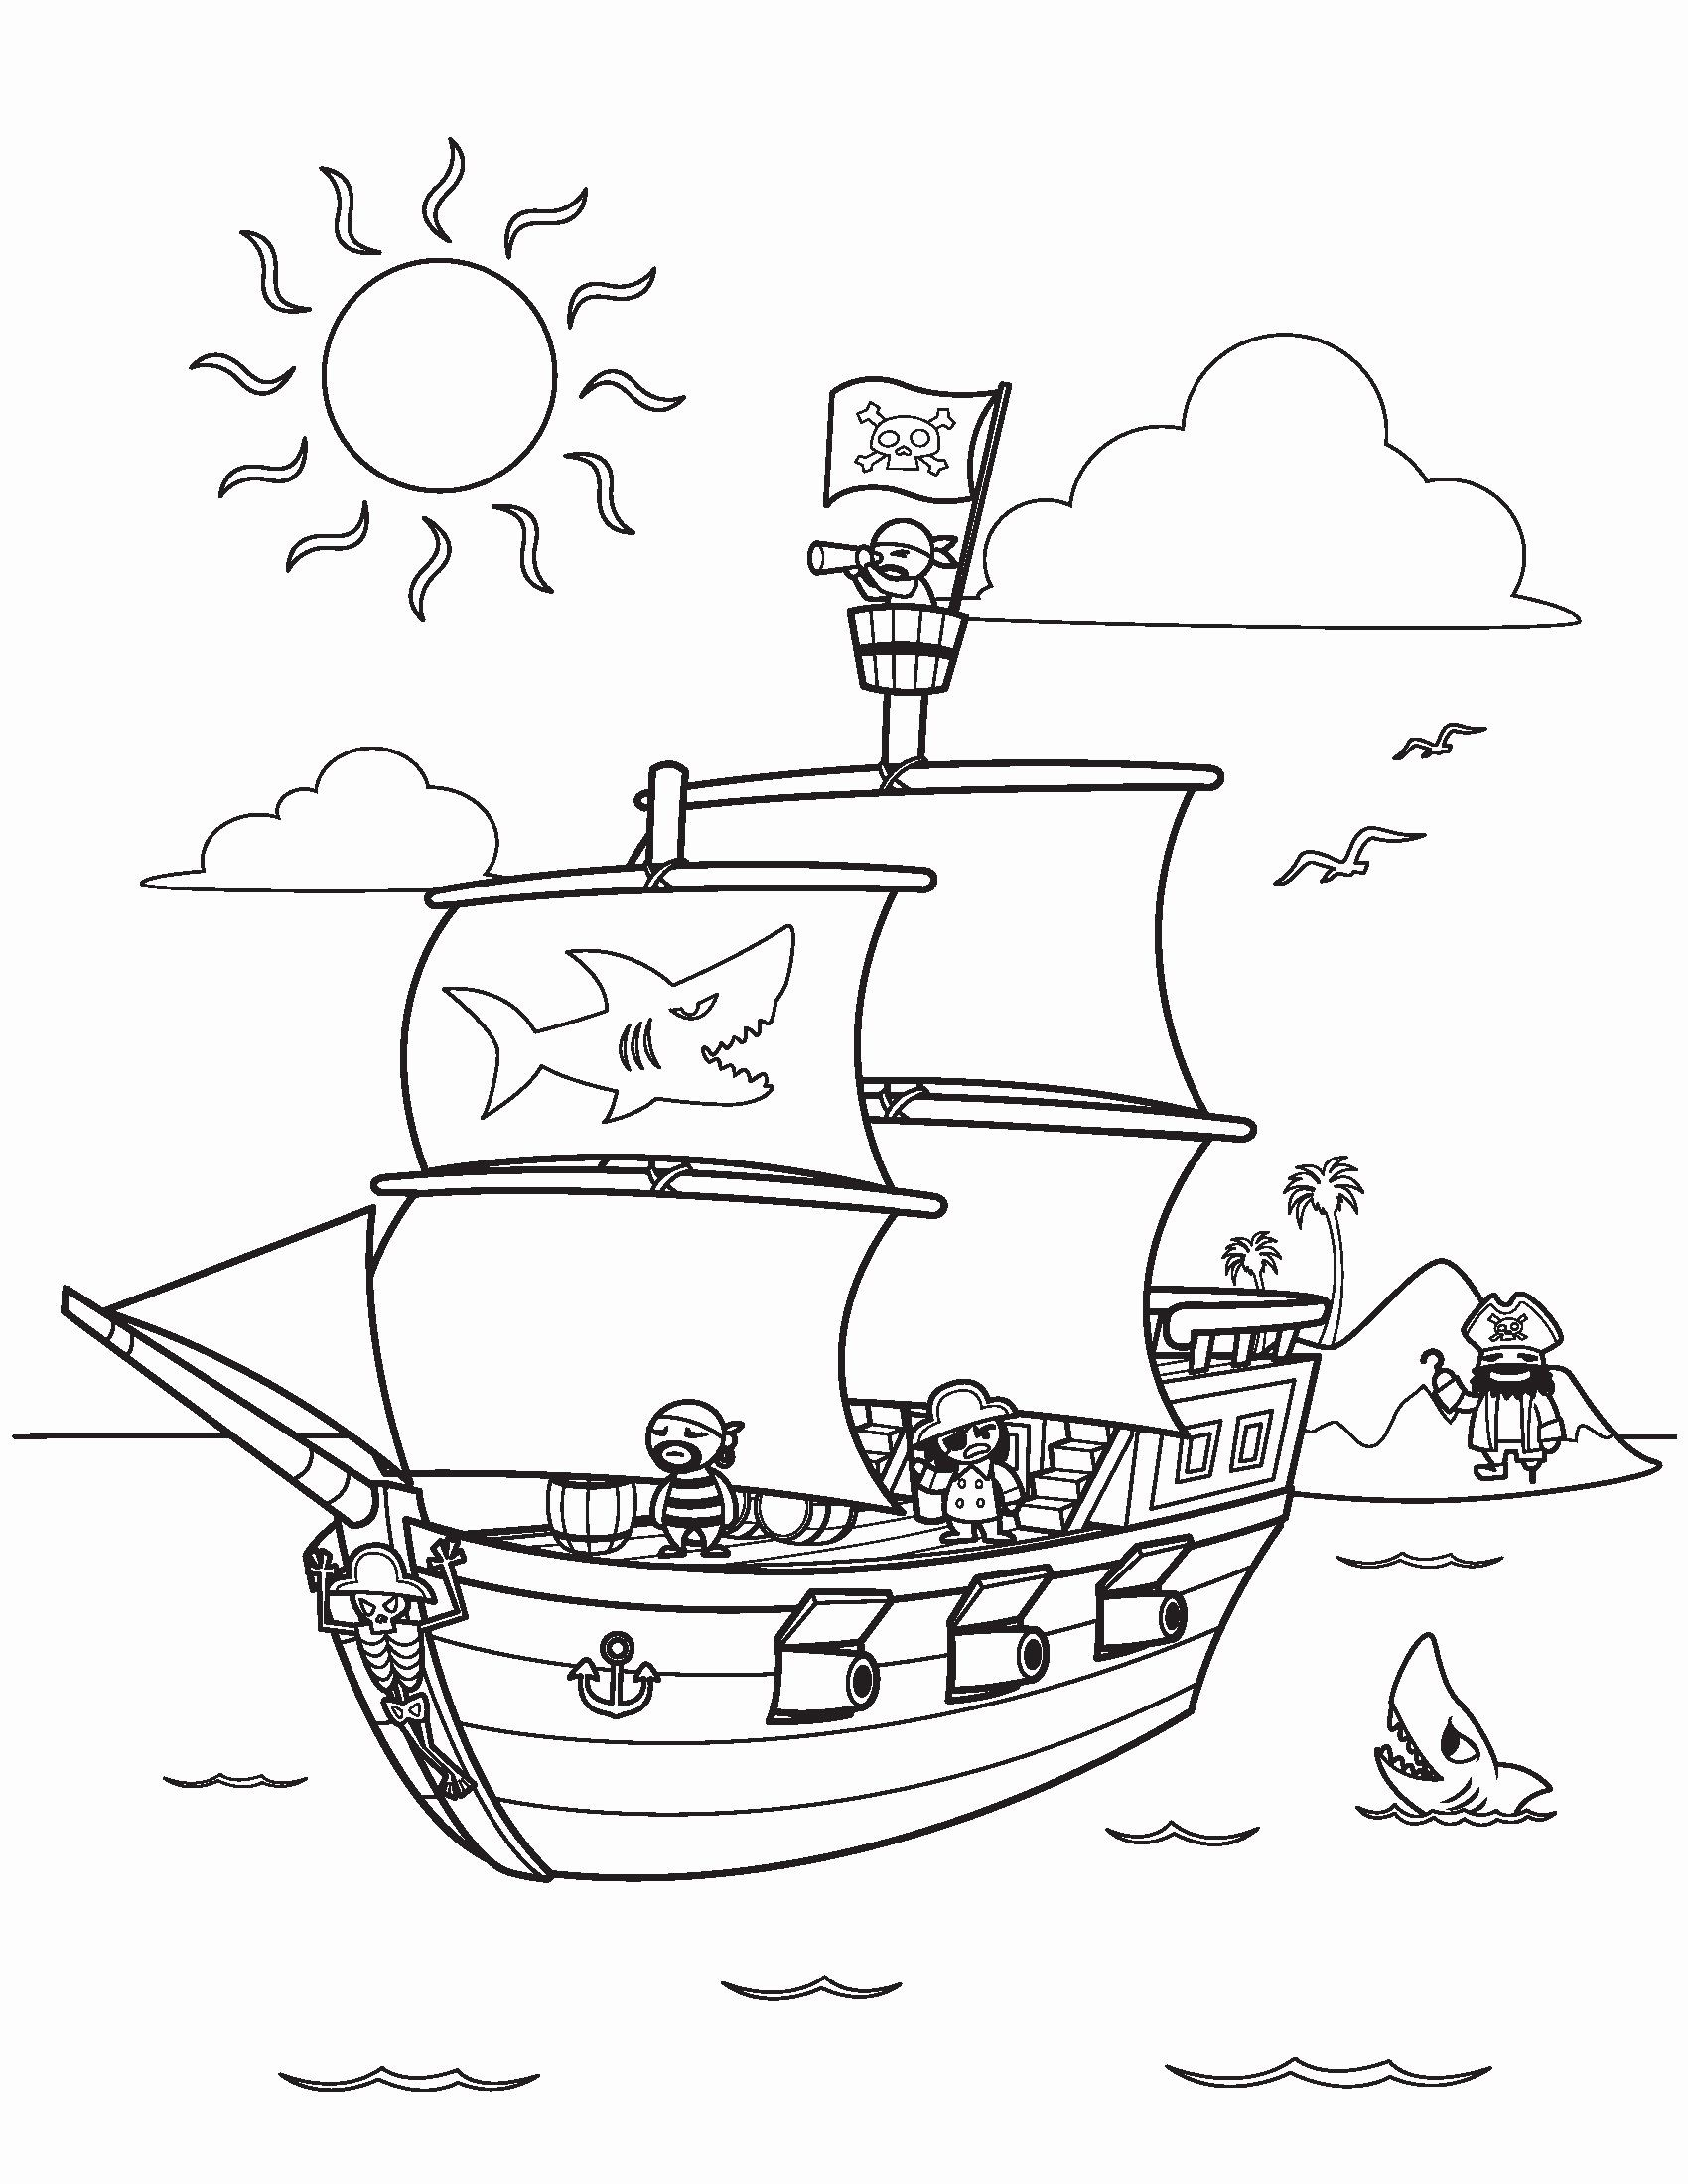 Pirate Ship Coloring Page Fresh Pirate Ship Coloring Pages Kidsfreecoloring Net Free Download Kids Pirate Coloring Pages Coloring Pages Coloring Pages For Kids